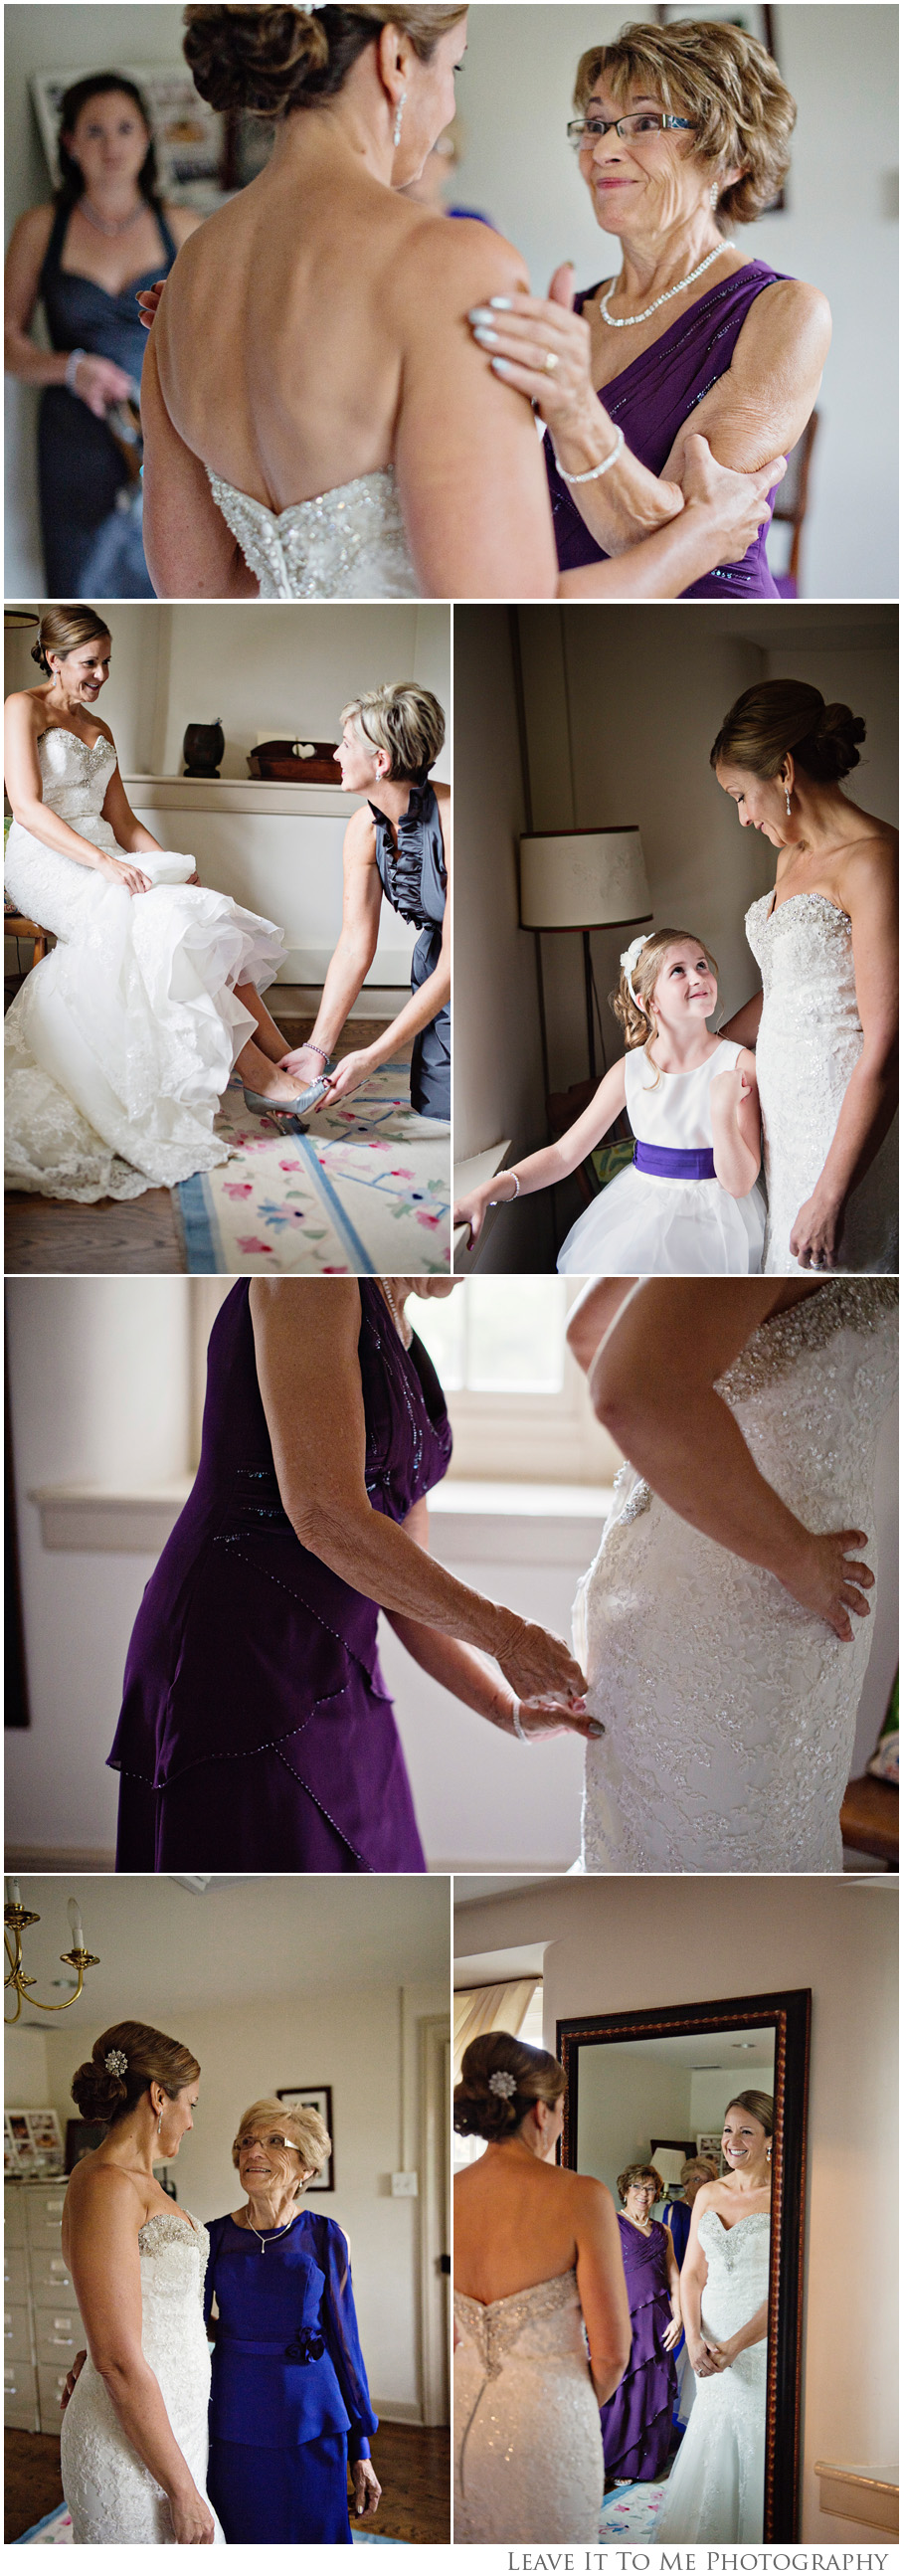 LGBT Wedding-Delaware Wedding Photographer-Equailty Wedding-Getting Ready